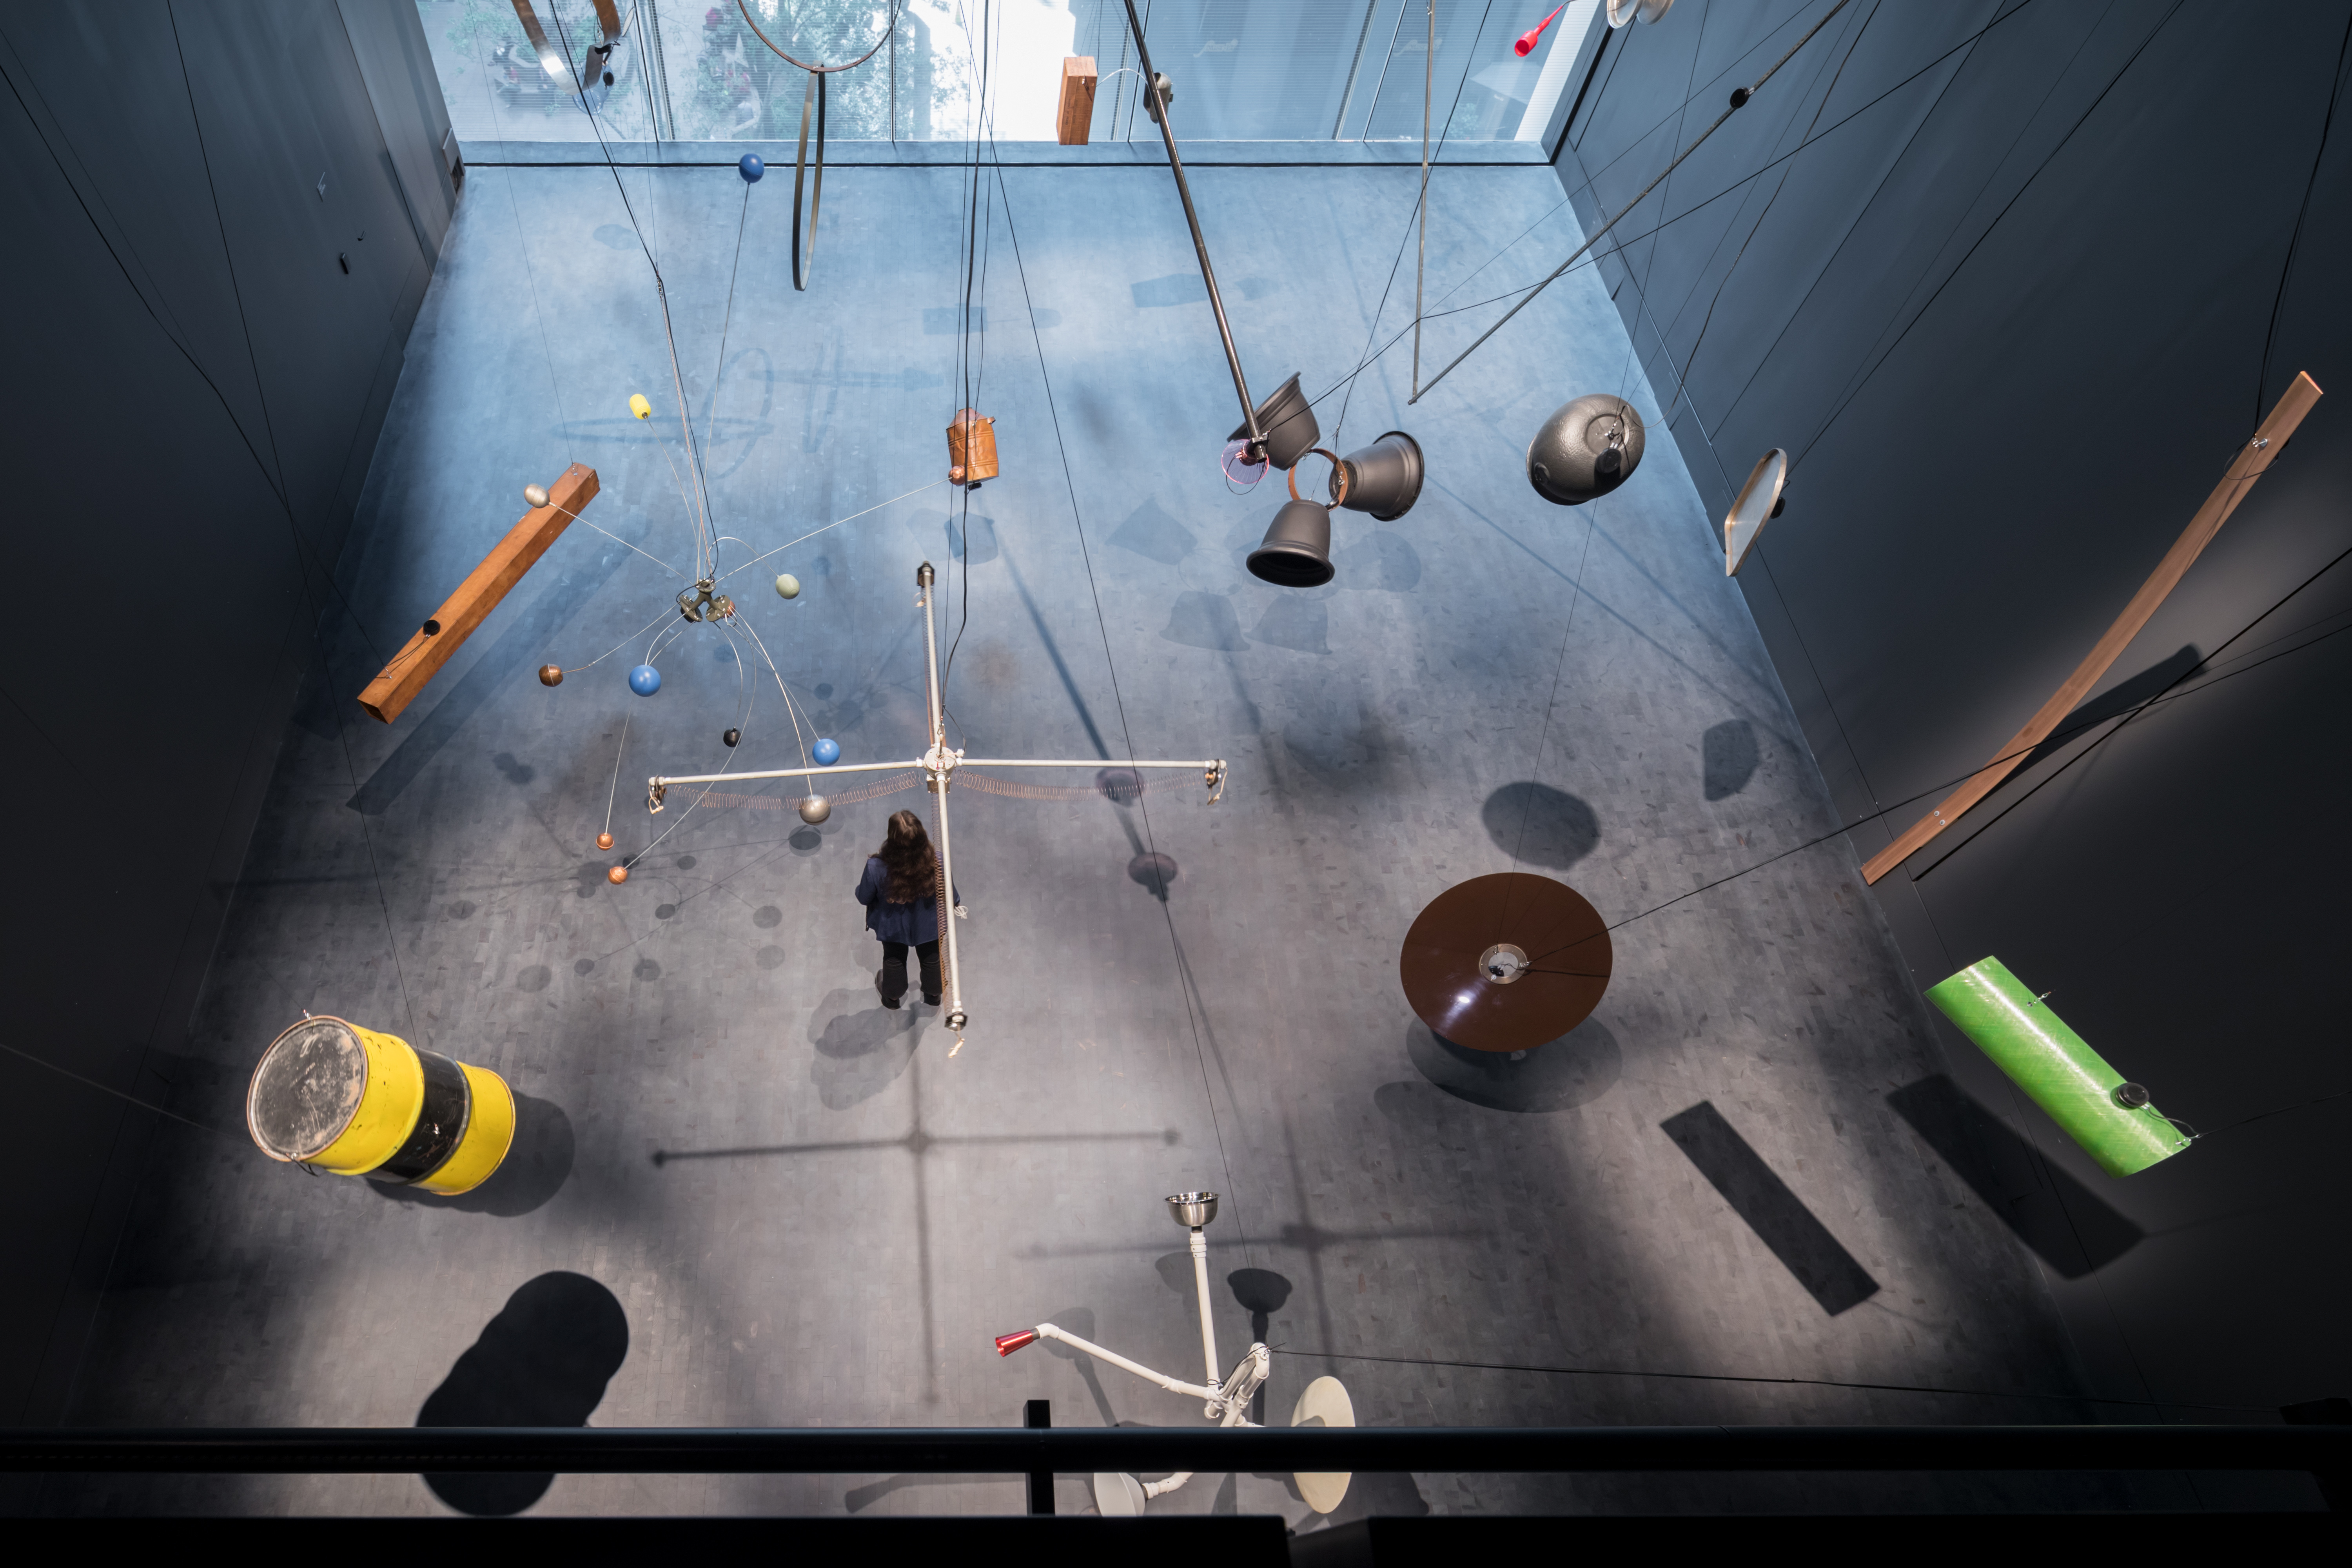 <p>MoMa Fase 2. Installation View of the Marie Josée and Henry Kravis Studio, The Museum of Modern Art Beeld Iwan Baan. Courtesey of MoMa</p>